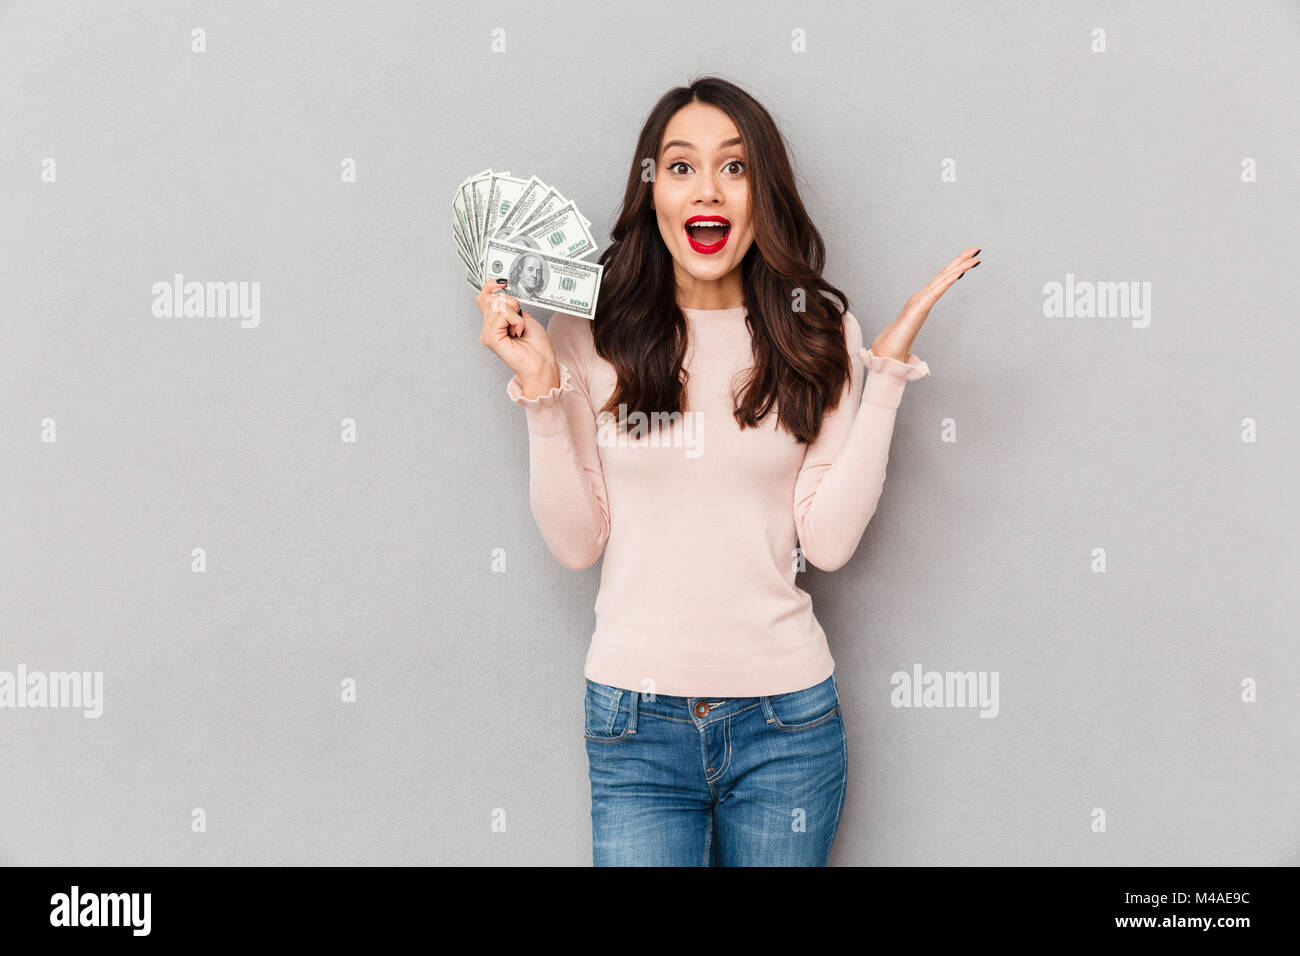 Image of gorgeous brunette female model with long hair and red lips holding fan of 100 dollar bills, being rich - Stock Image